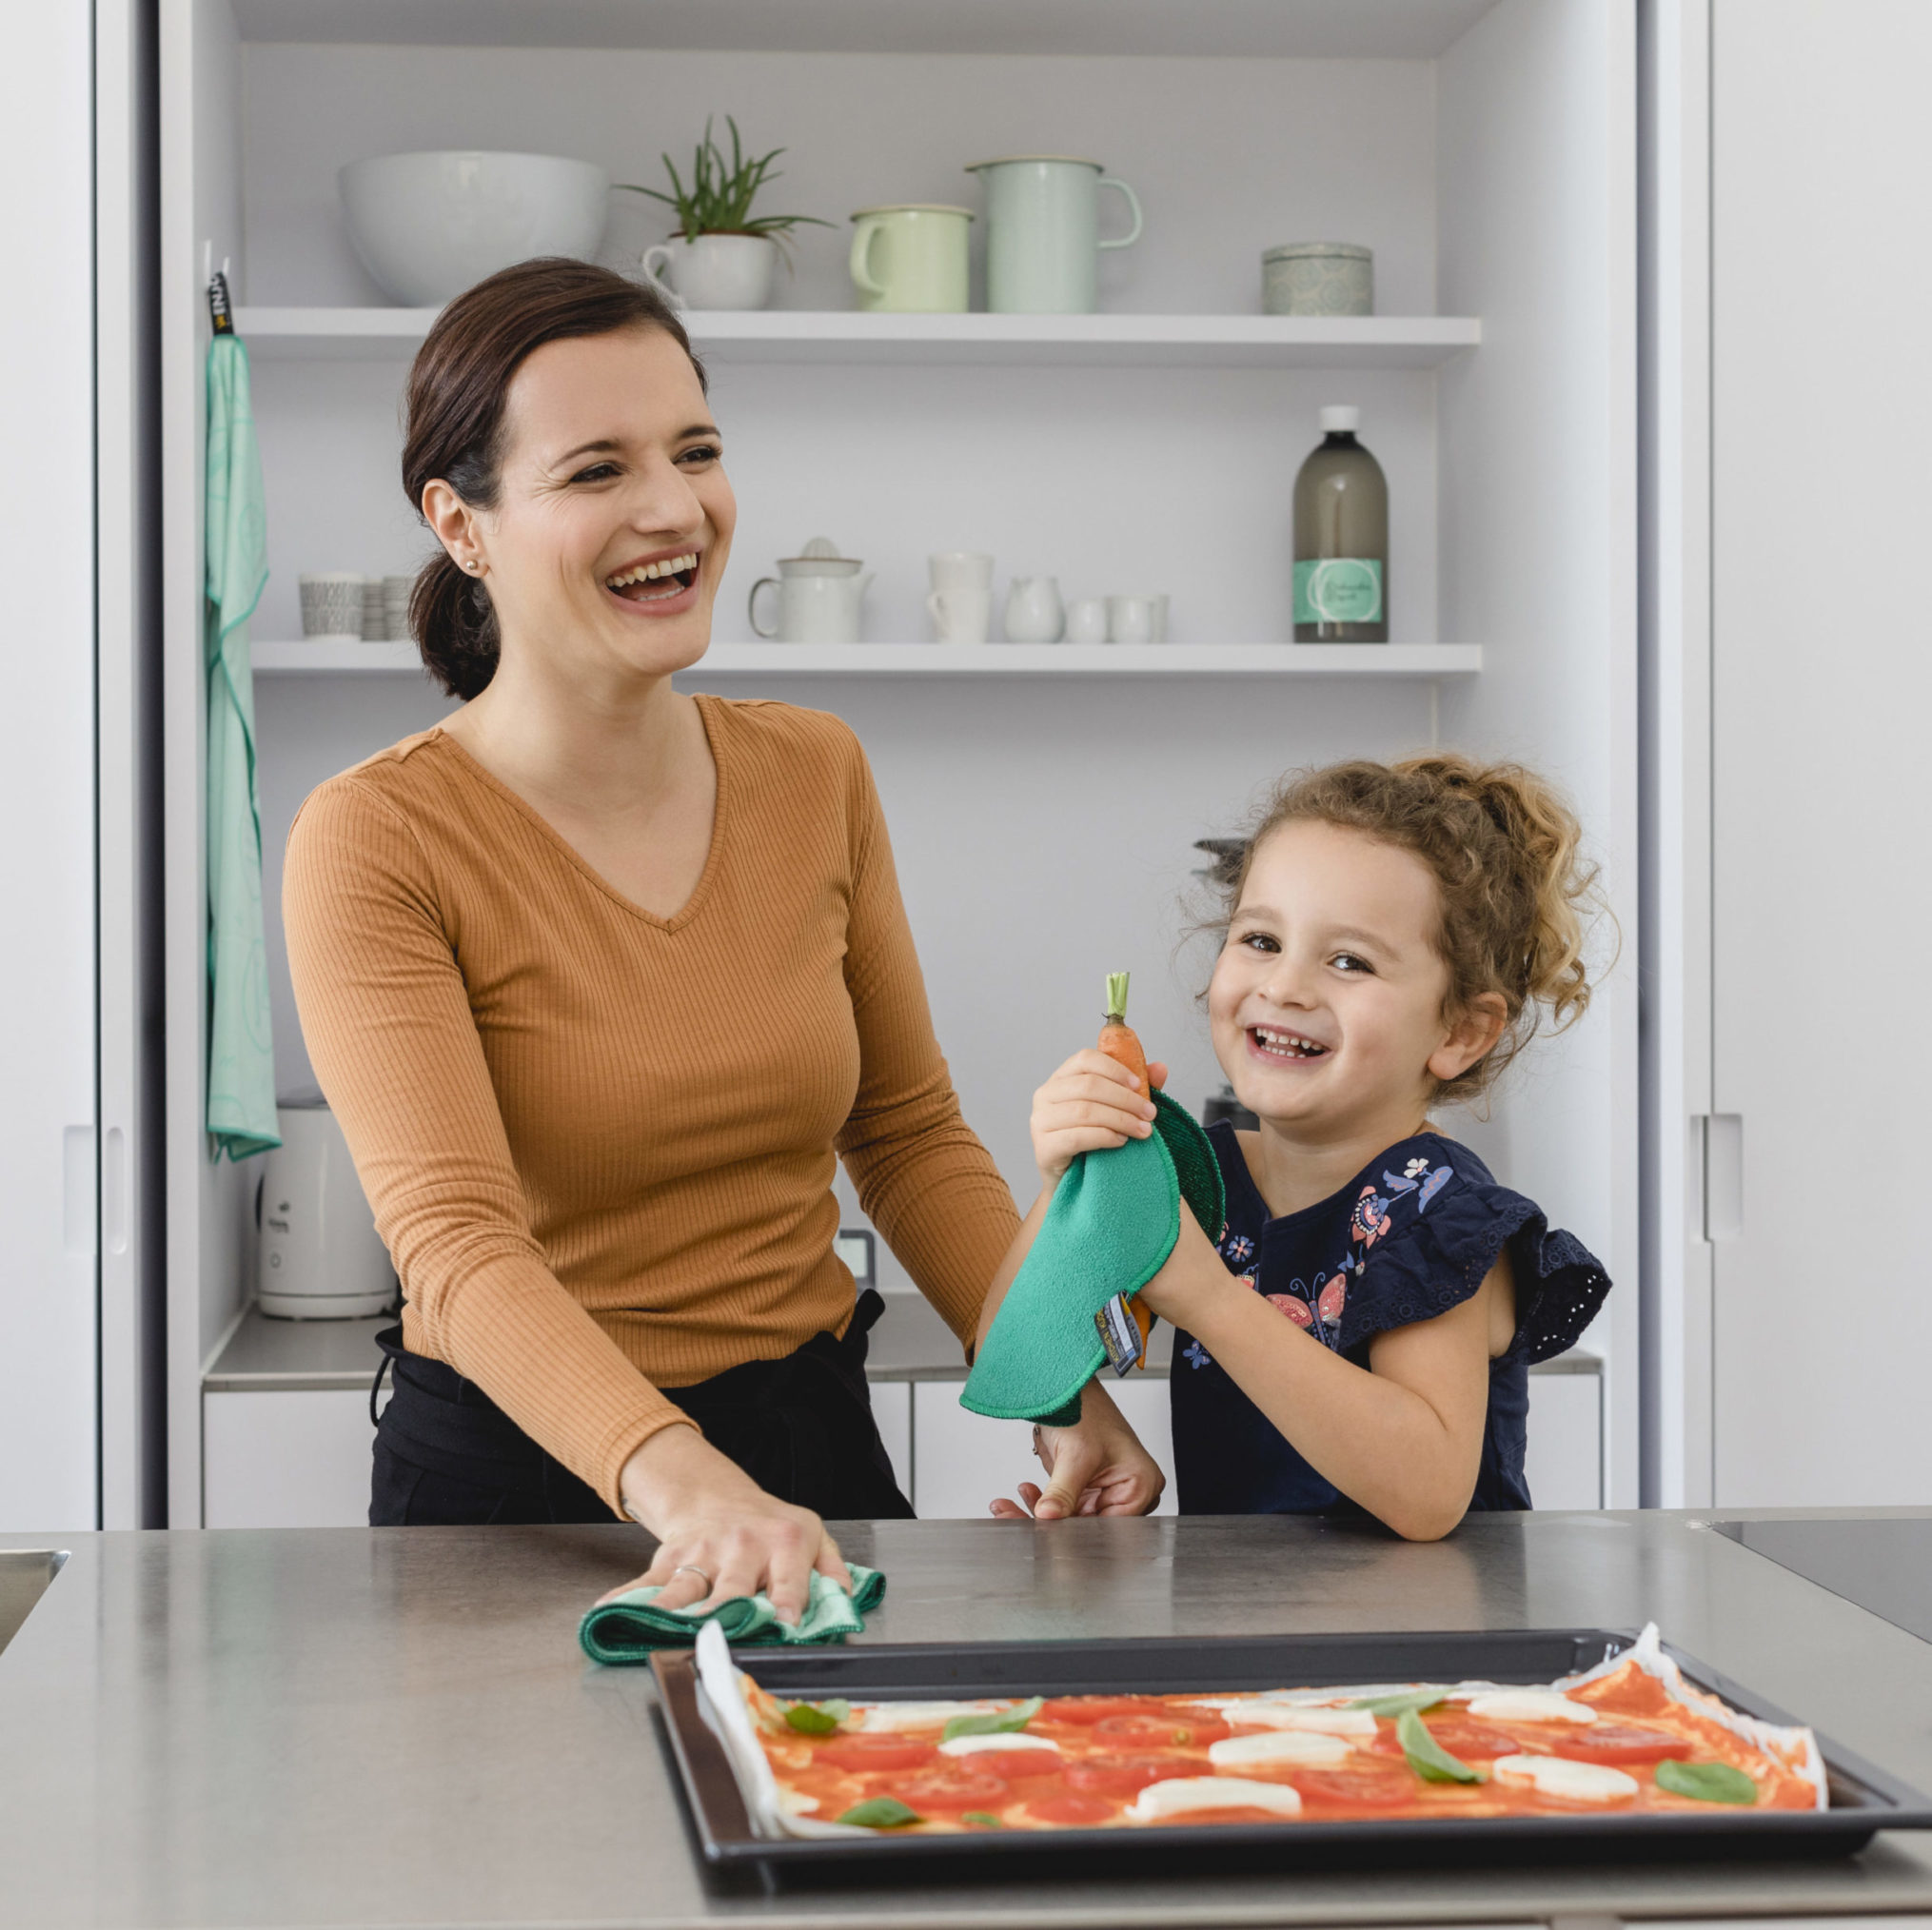 Kitchen cleaning no chemicals